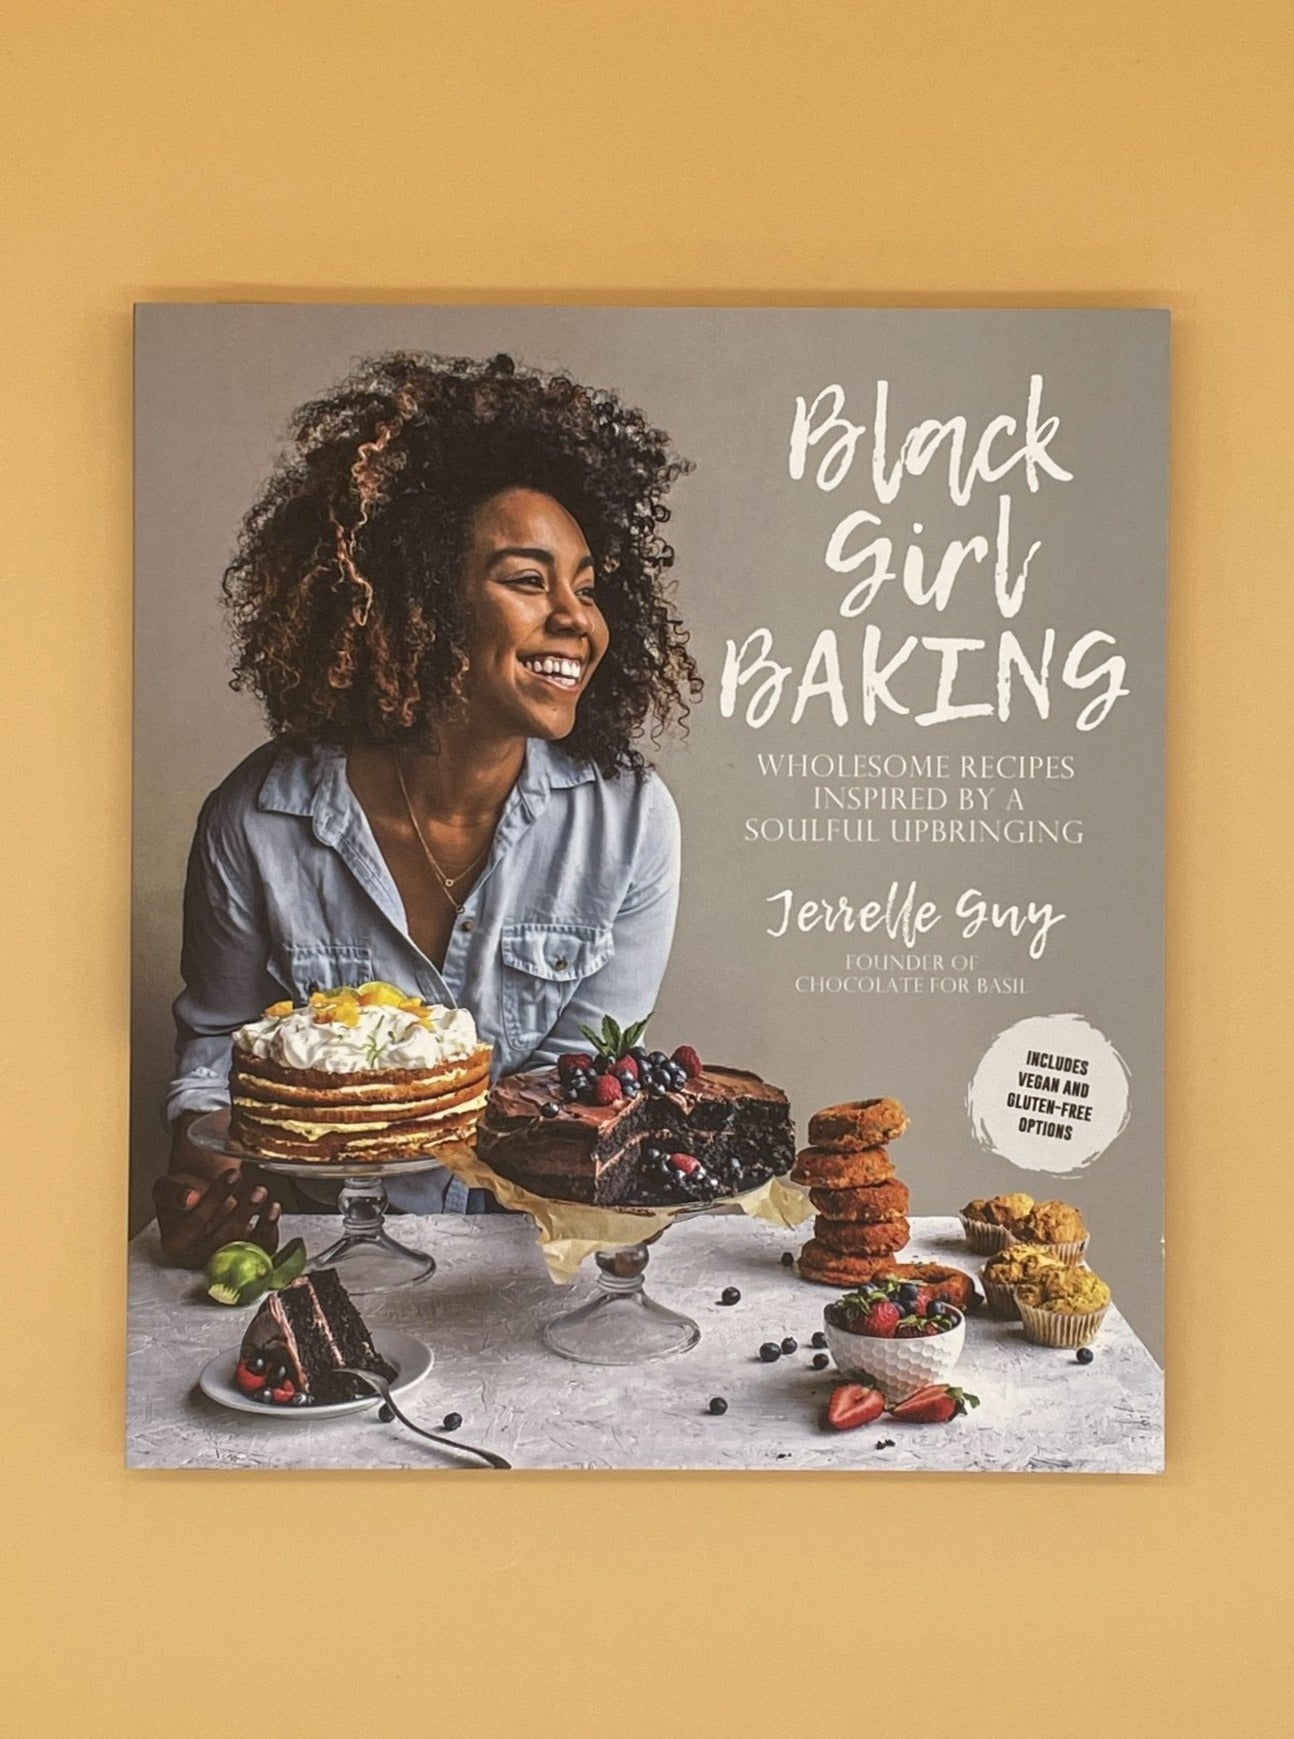 Black Girl Baking: Wholesome Recipes Inspired by a Soulful Upbringing (Jerrelle Guy)